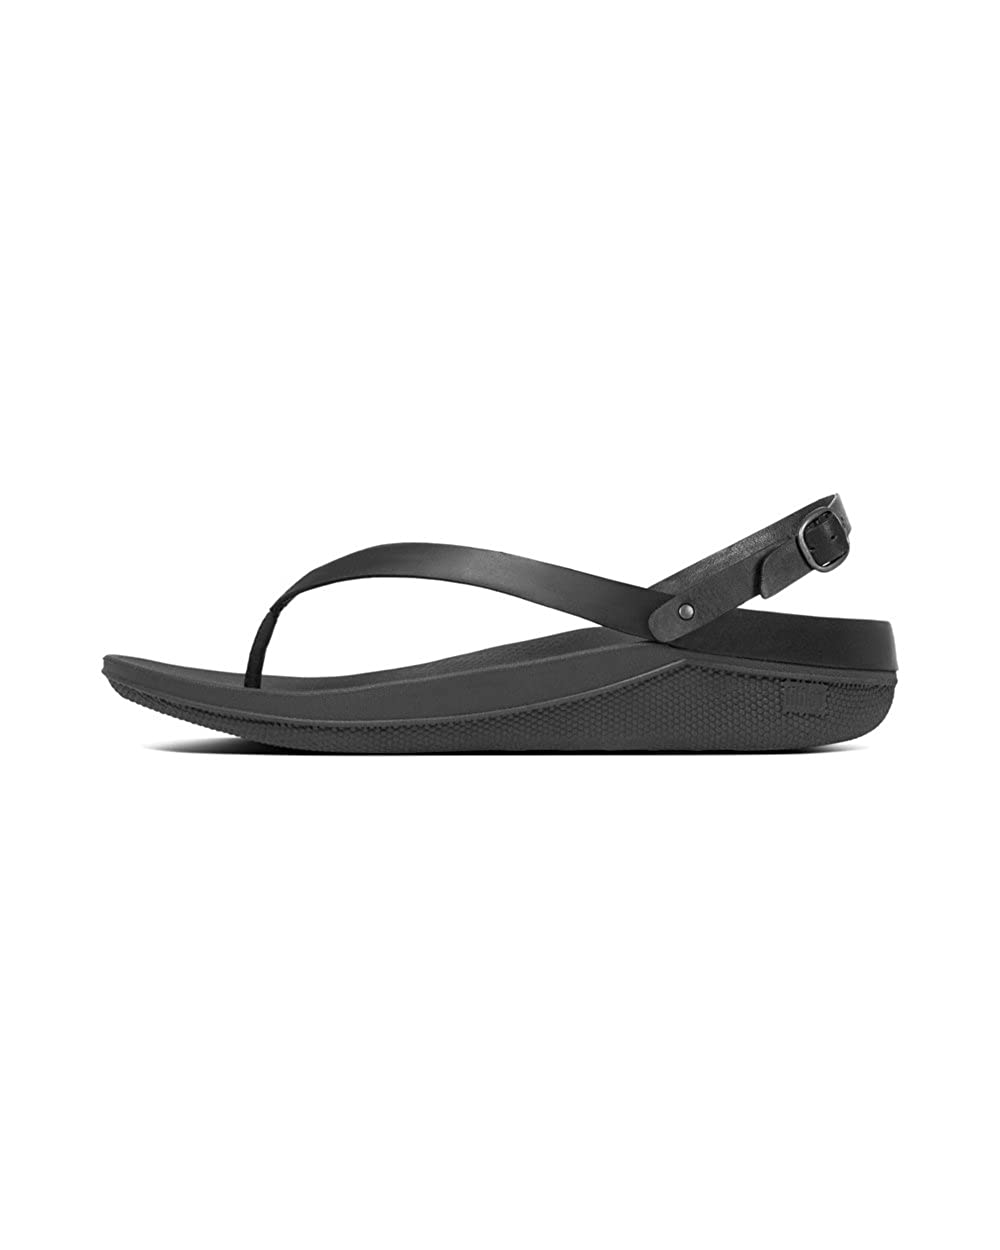 bf6ca2516 Fitflop Women Flip Leather Back-Strap Sandals  Amazon.co.uk  Shoes   Bags